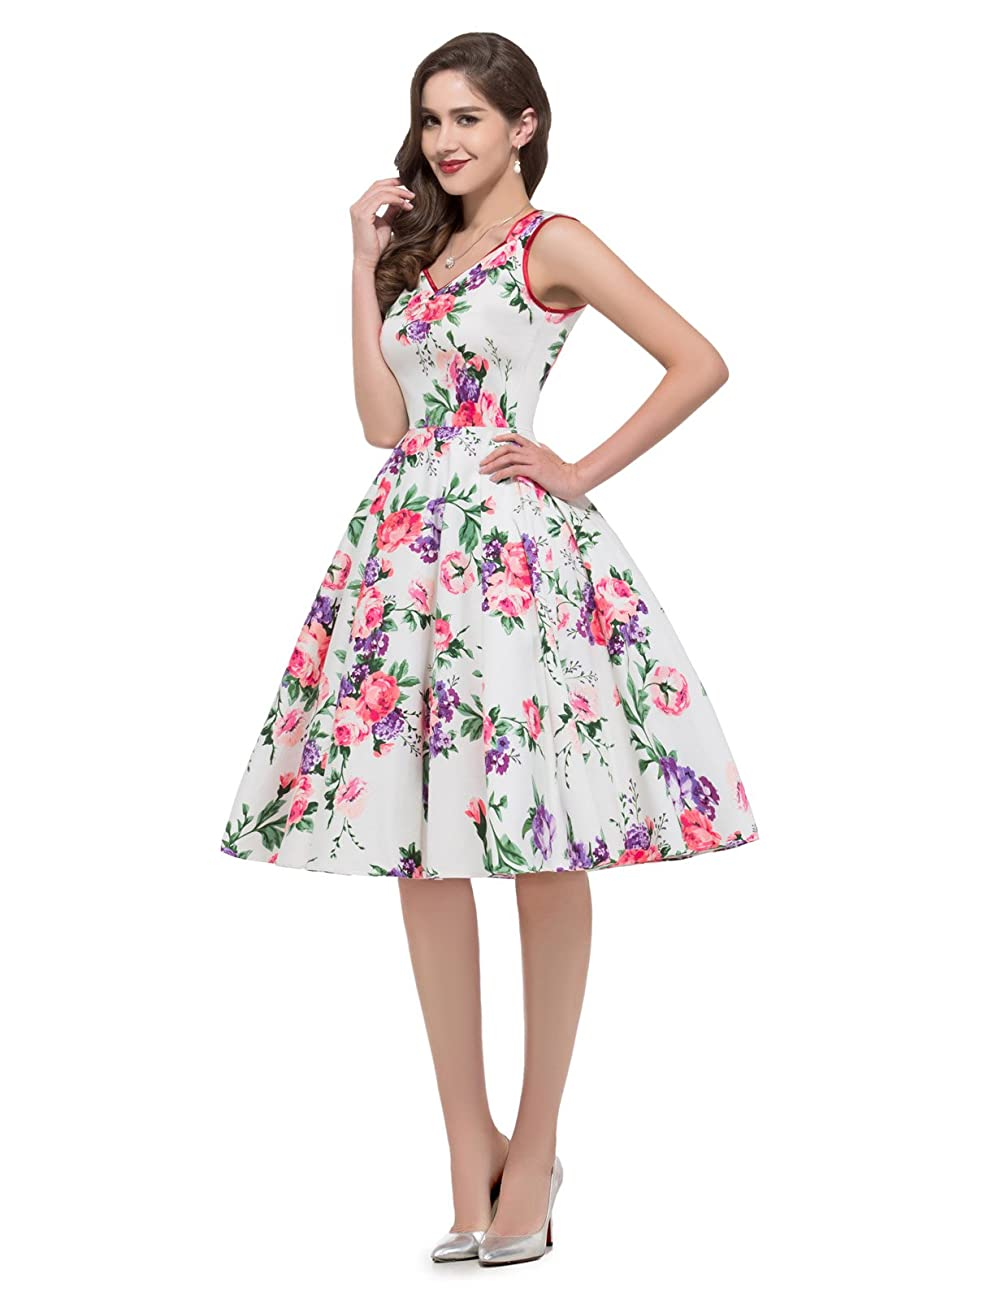 GRACE KARIN Women Floral Homecoming Prom Dress Short for Women CL7600 4